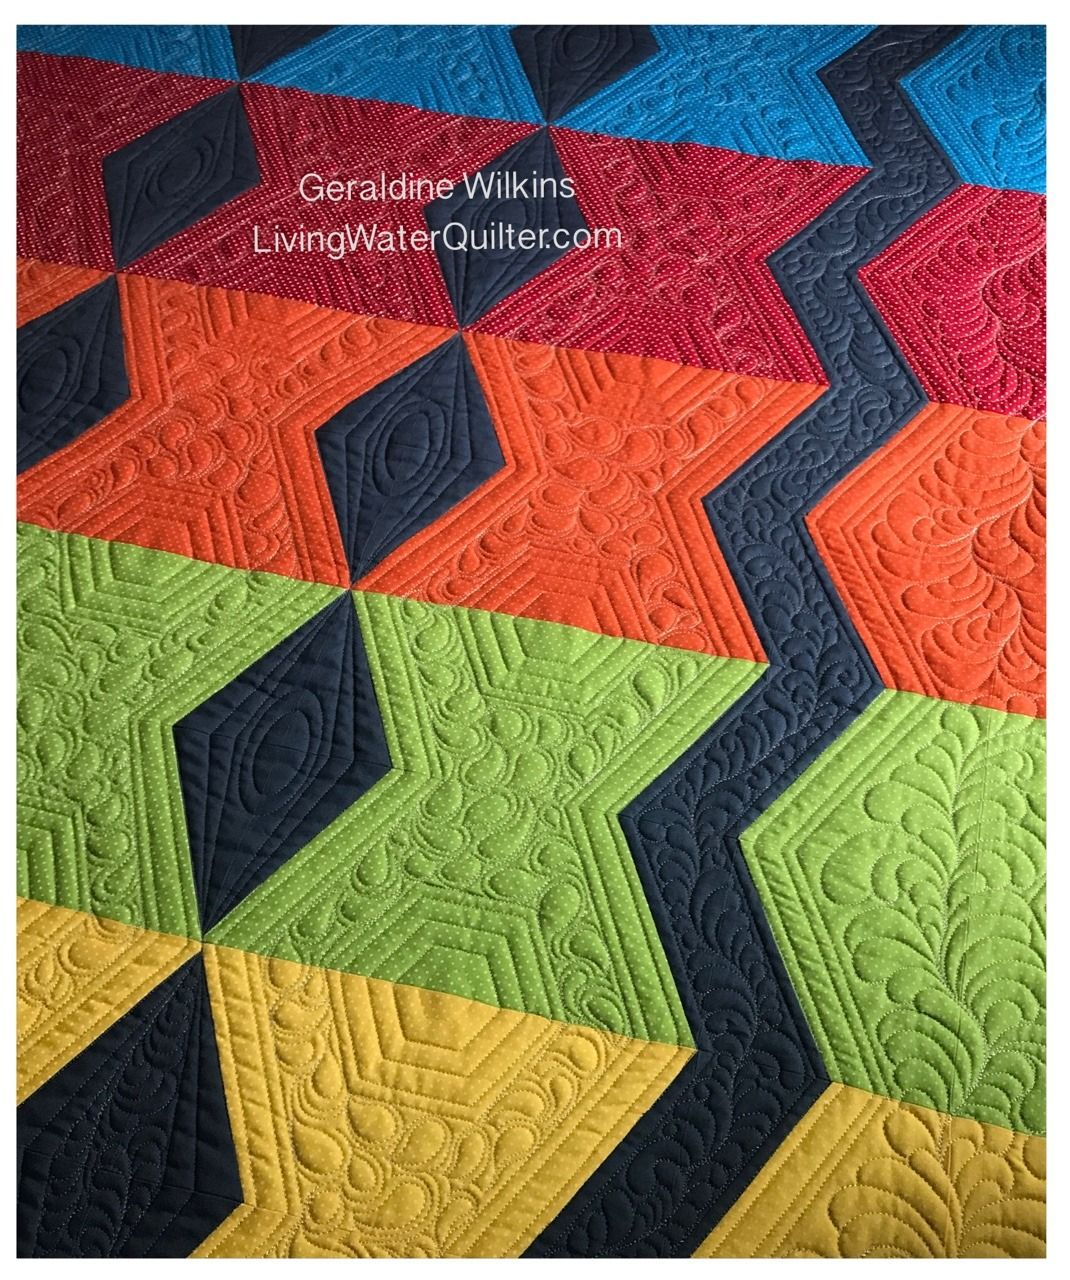 Geraldine Wilkins, LivingWaterQuilter.com - Free motion quilted feathers and ruler quilting with hexagons and ovals.